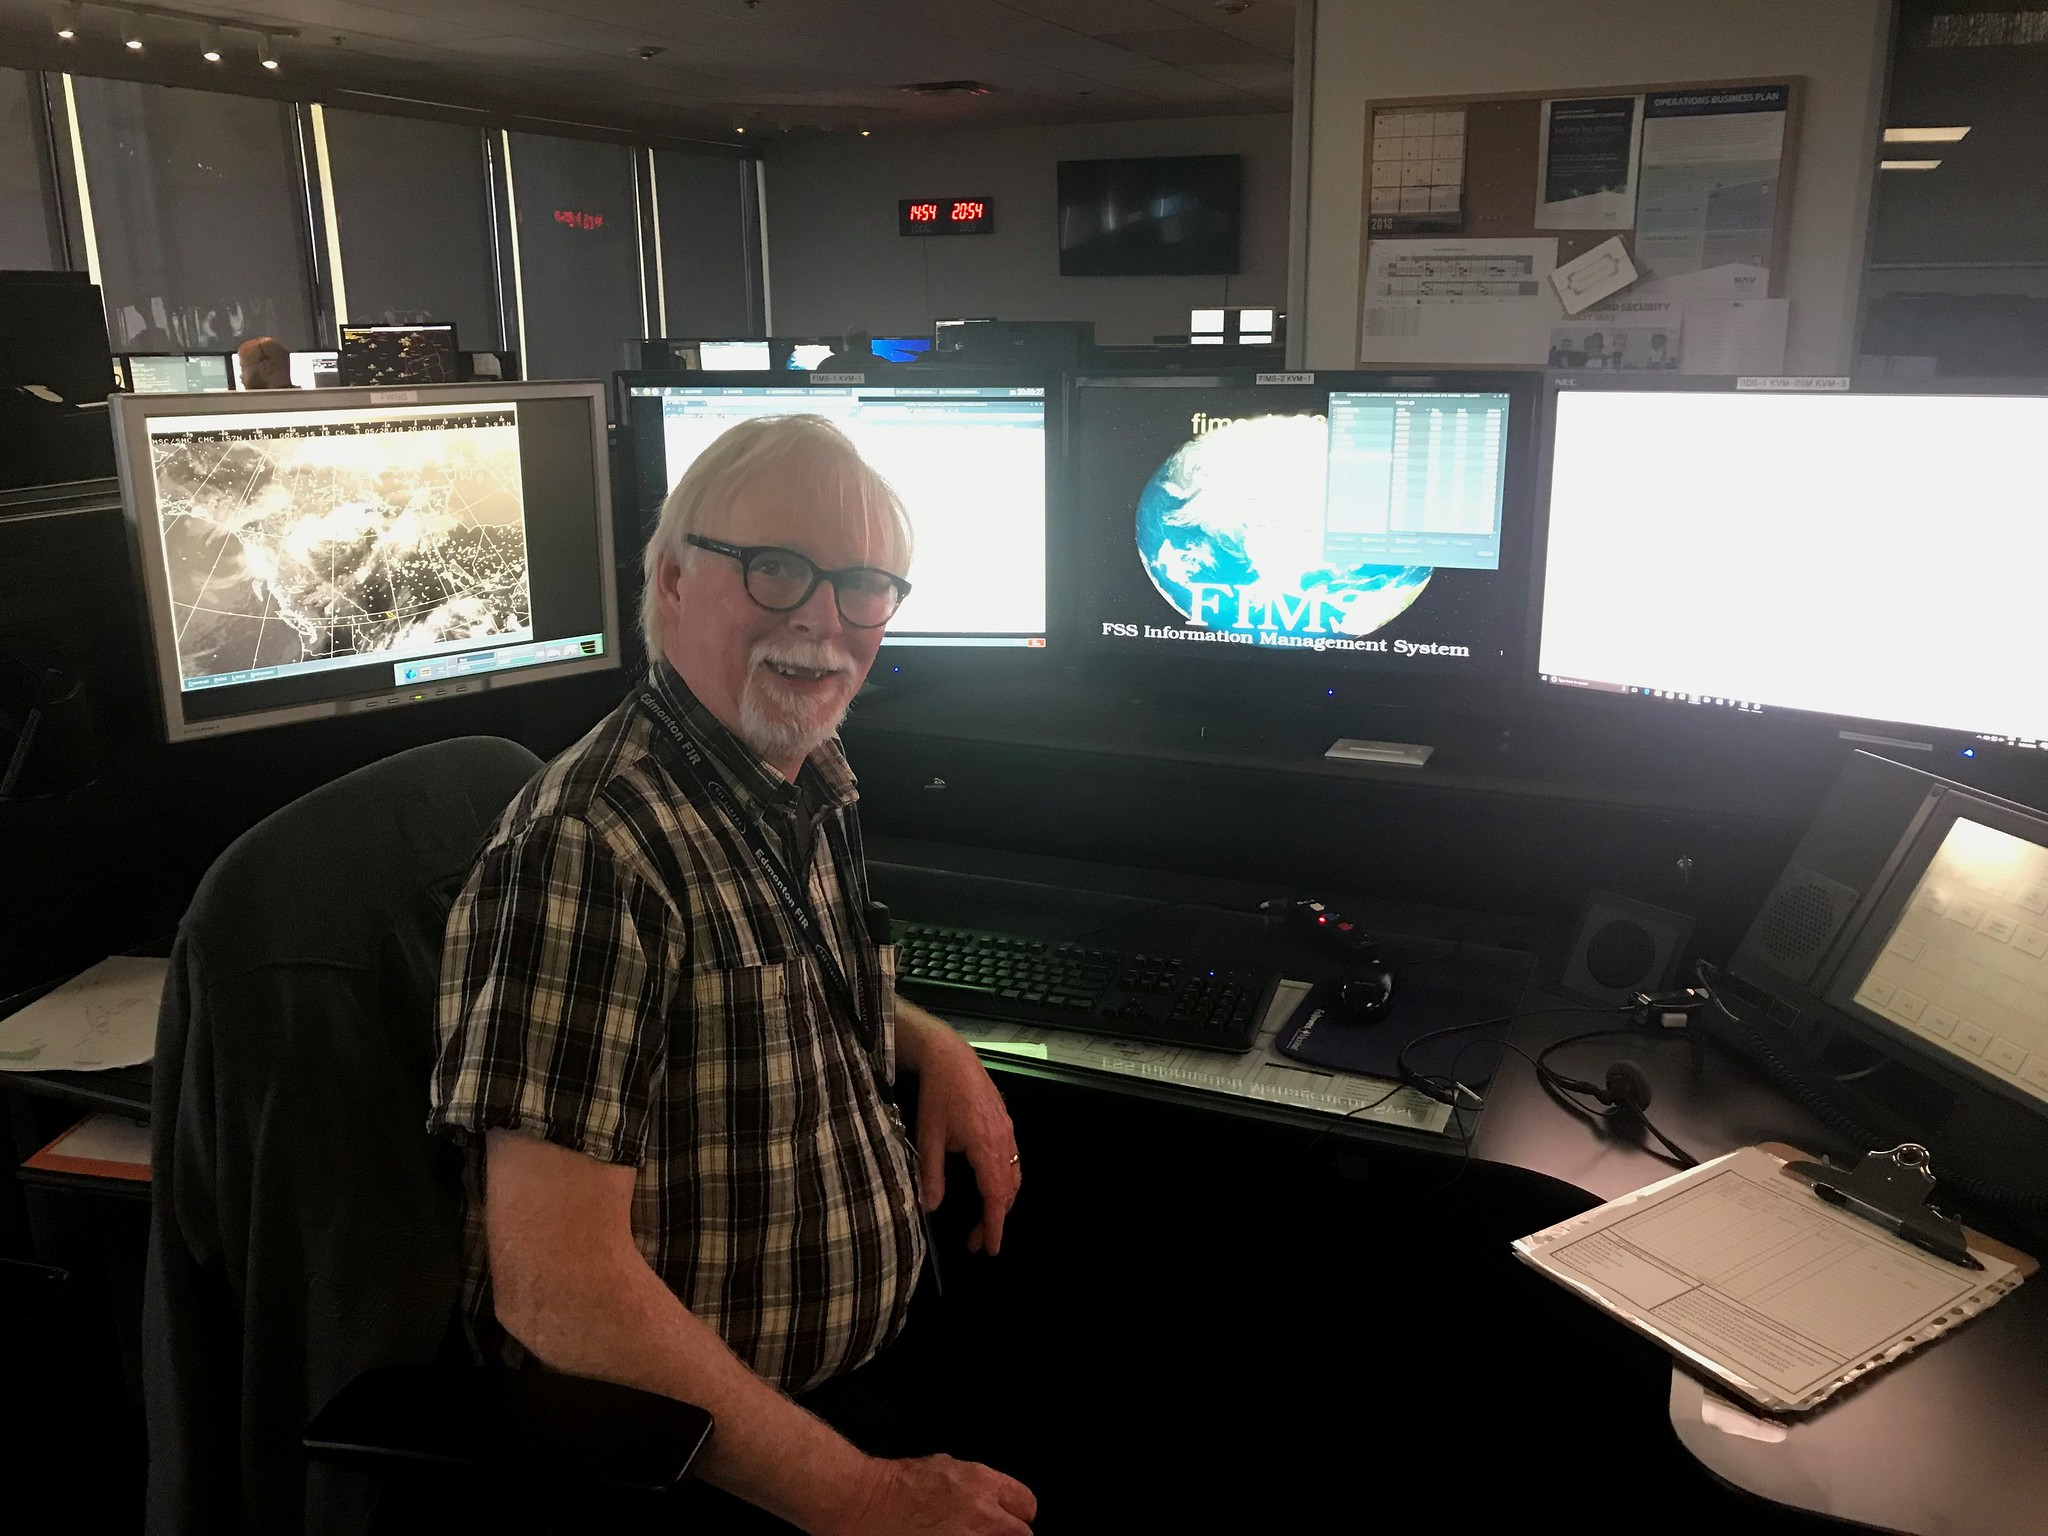 I first met Dave Carpenter in Dawson Creek, British Columbia in the early 1990's. The folks at the Edmonton Flight information Centre brief pilots regarding flight information over an immense expanse of Canadian airspace. (USF&WS photo by Jim Bredy)